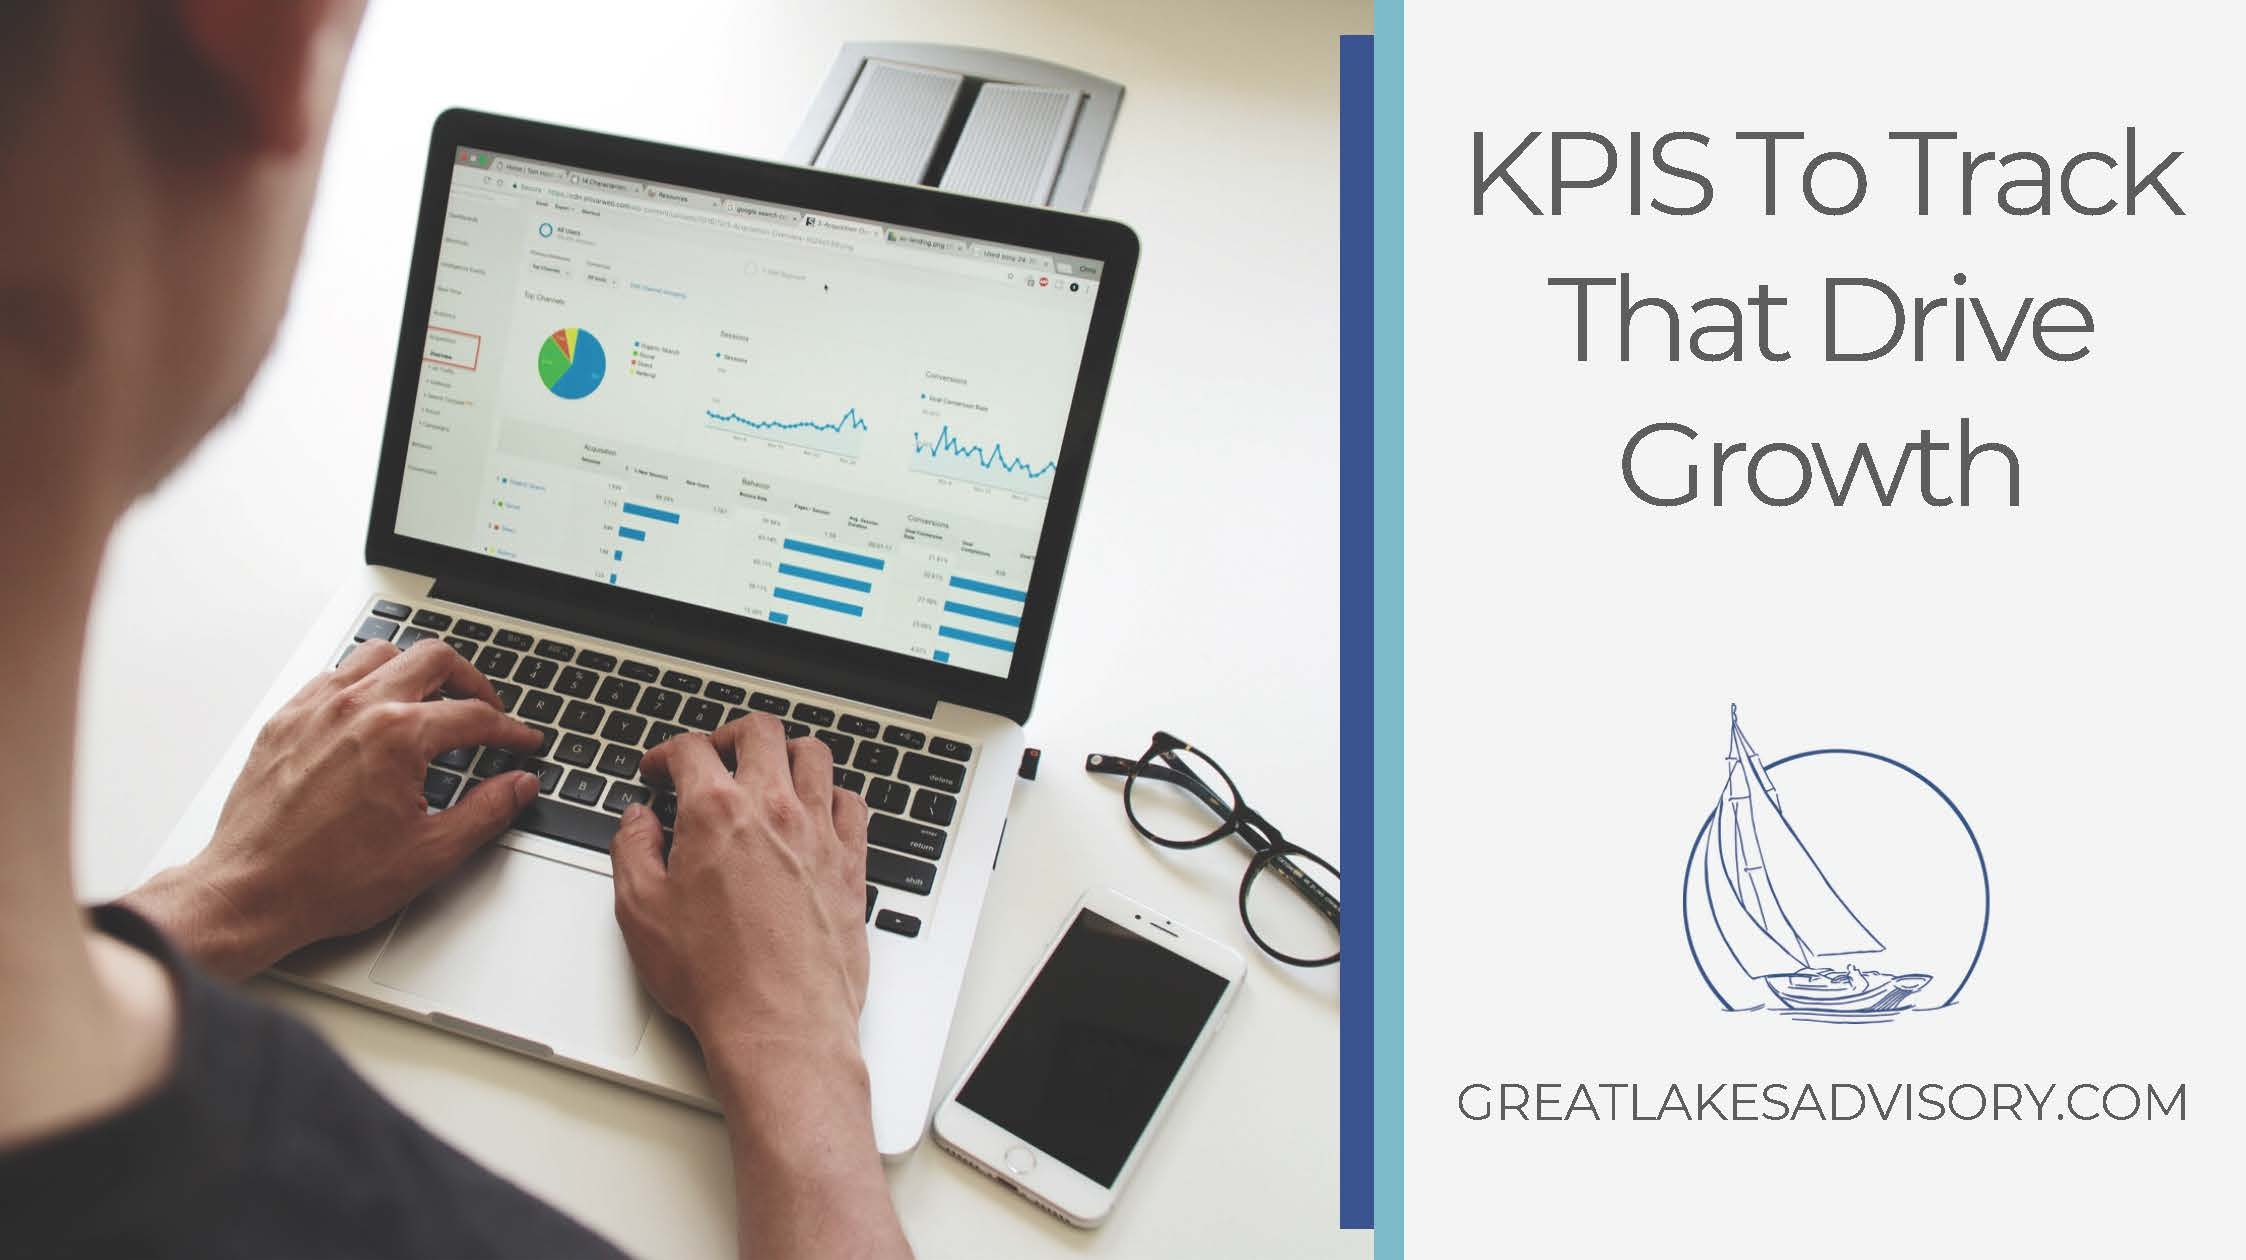 KPIs To Track That Drive Growth